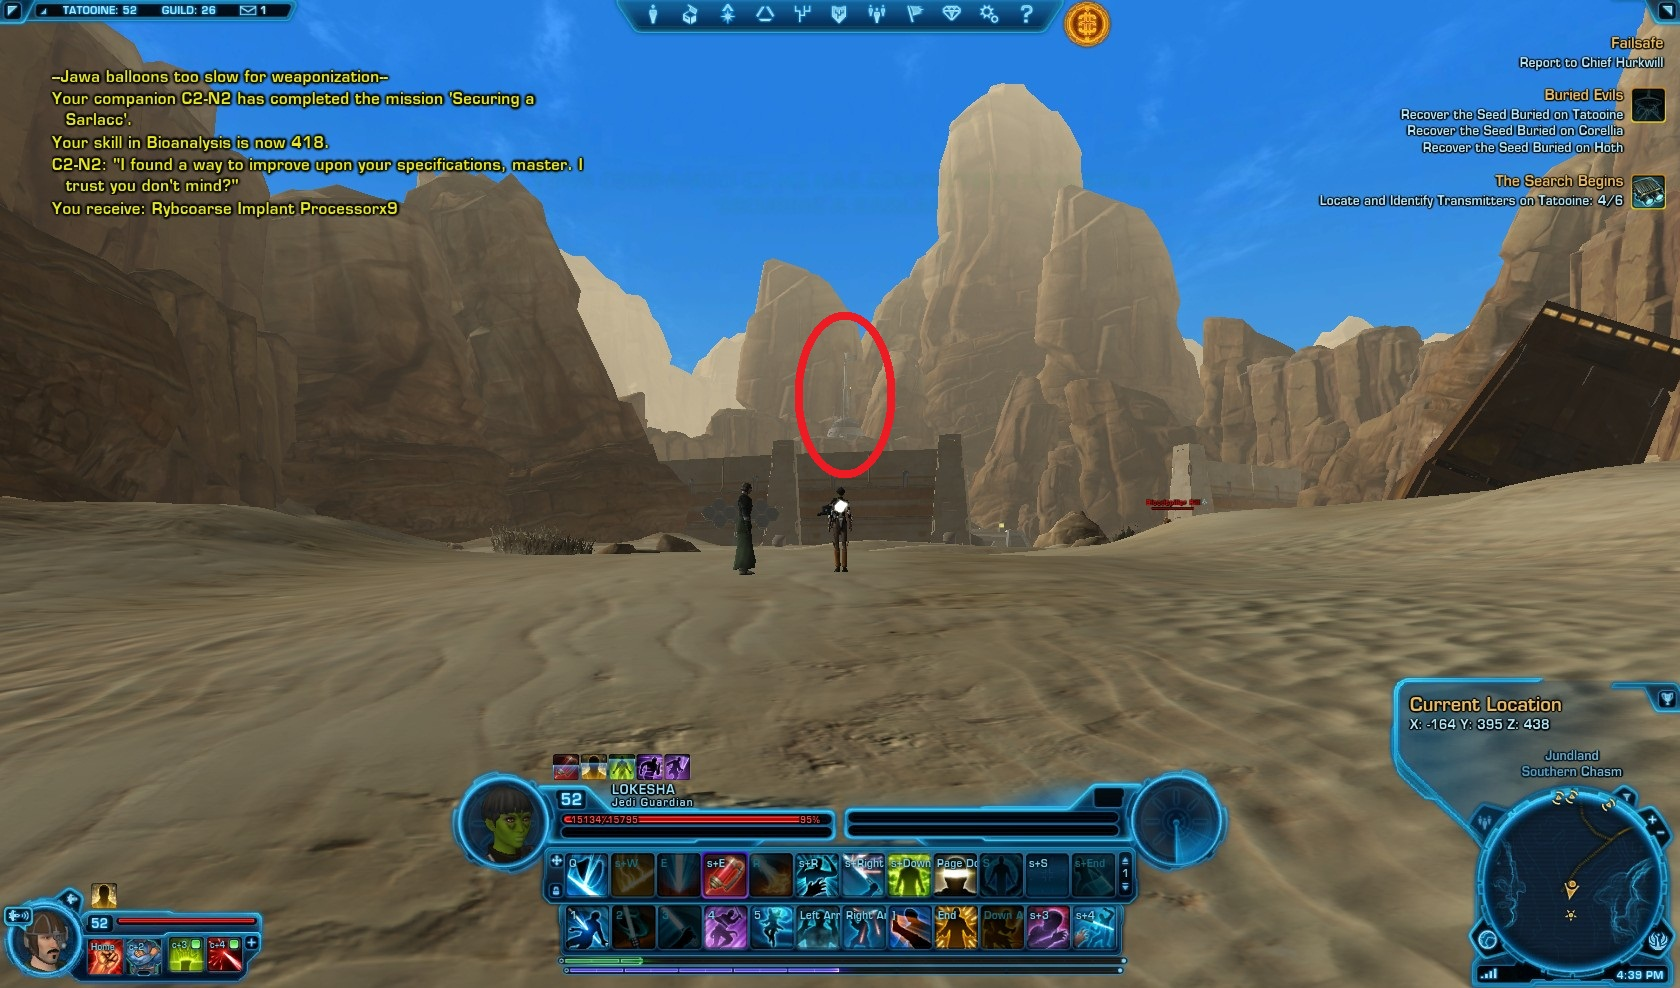 Swtor The Search Begins Macrobinoculars Mission